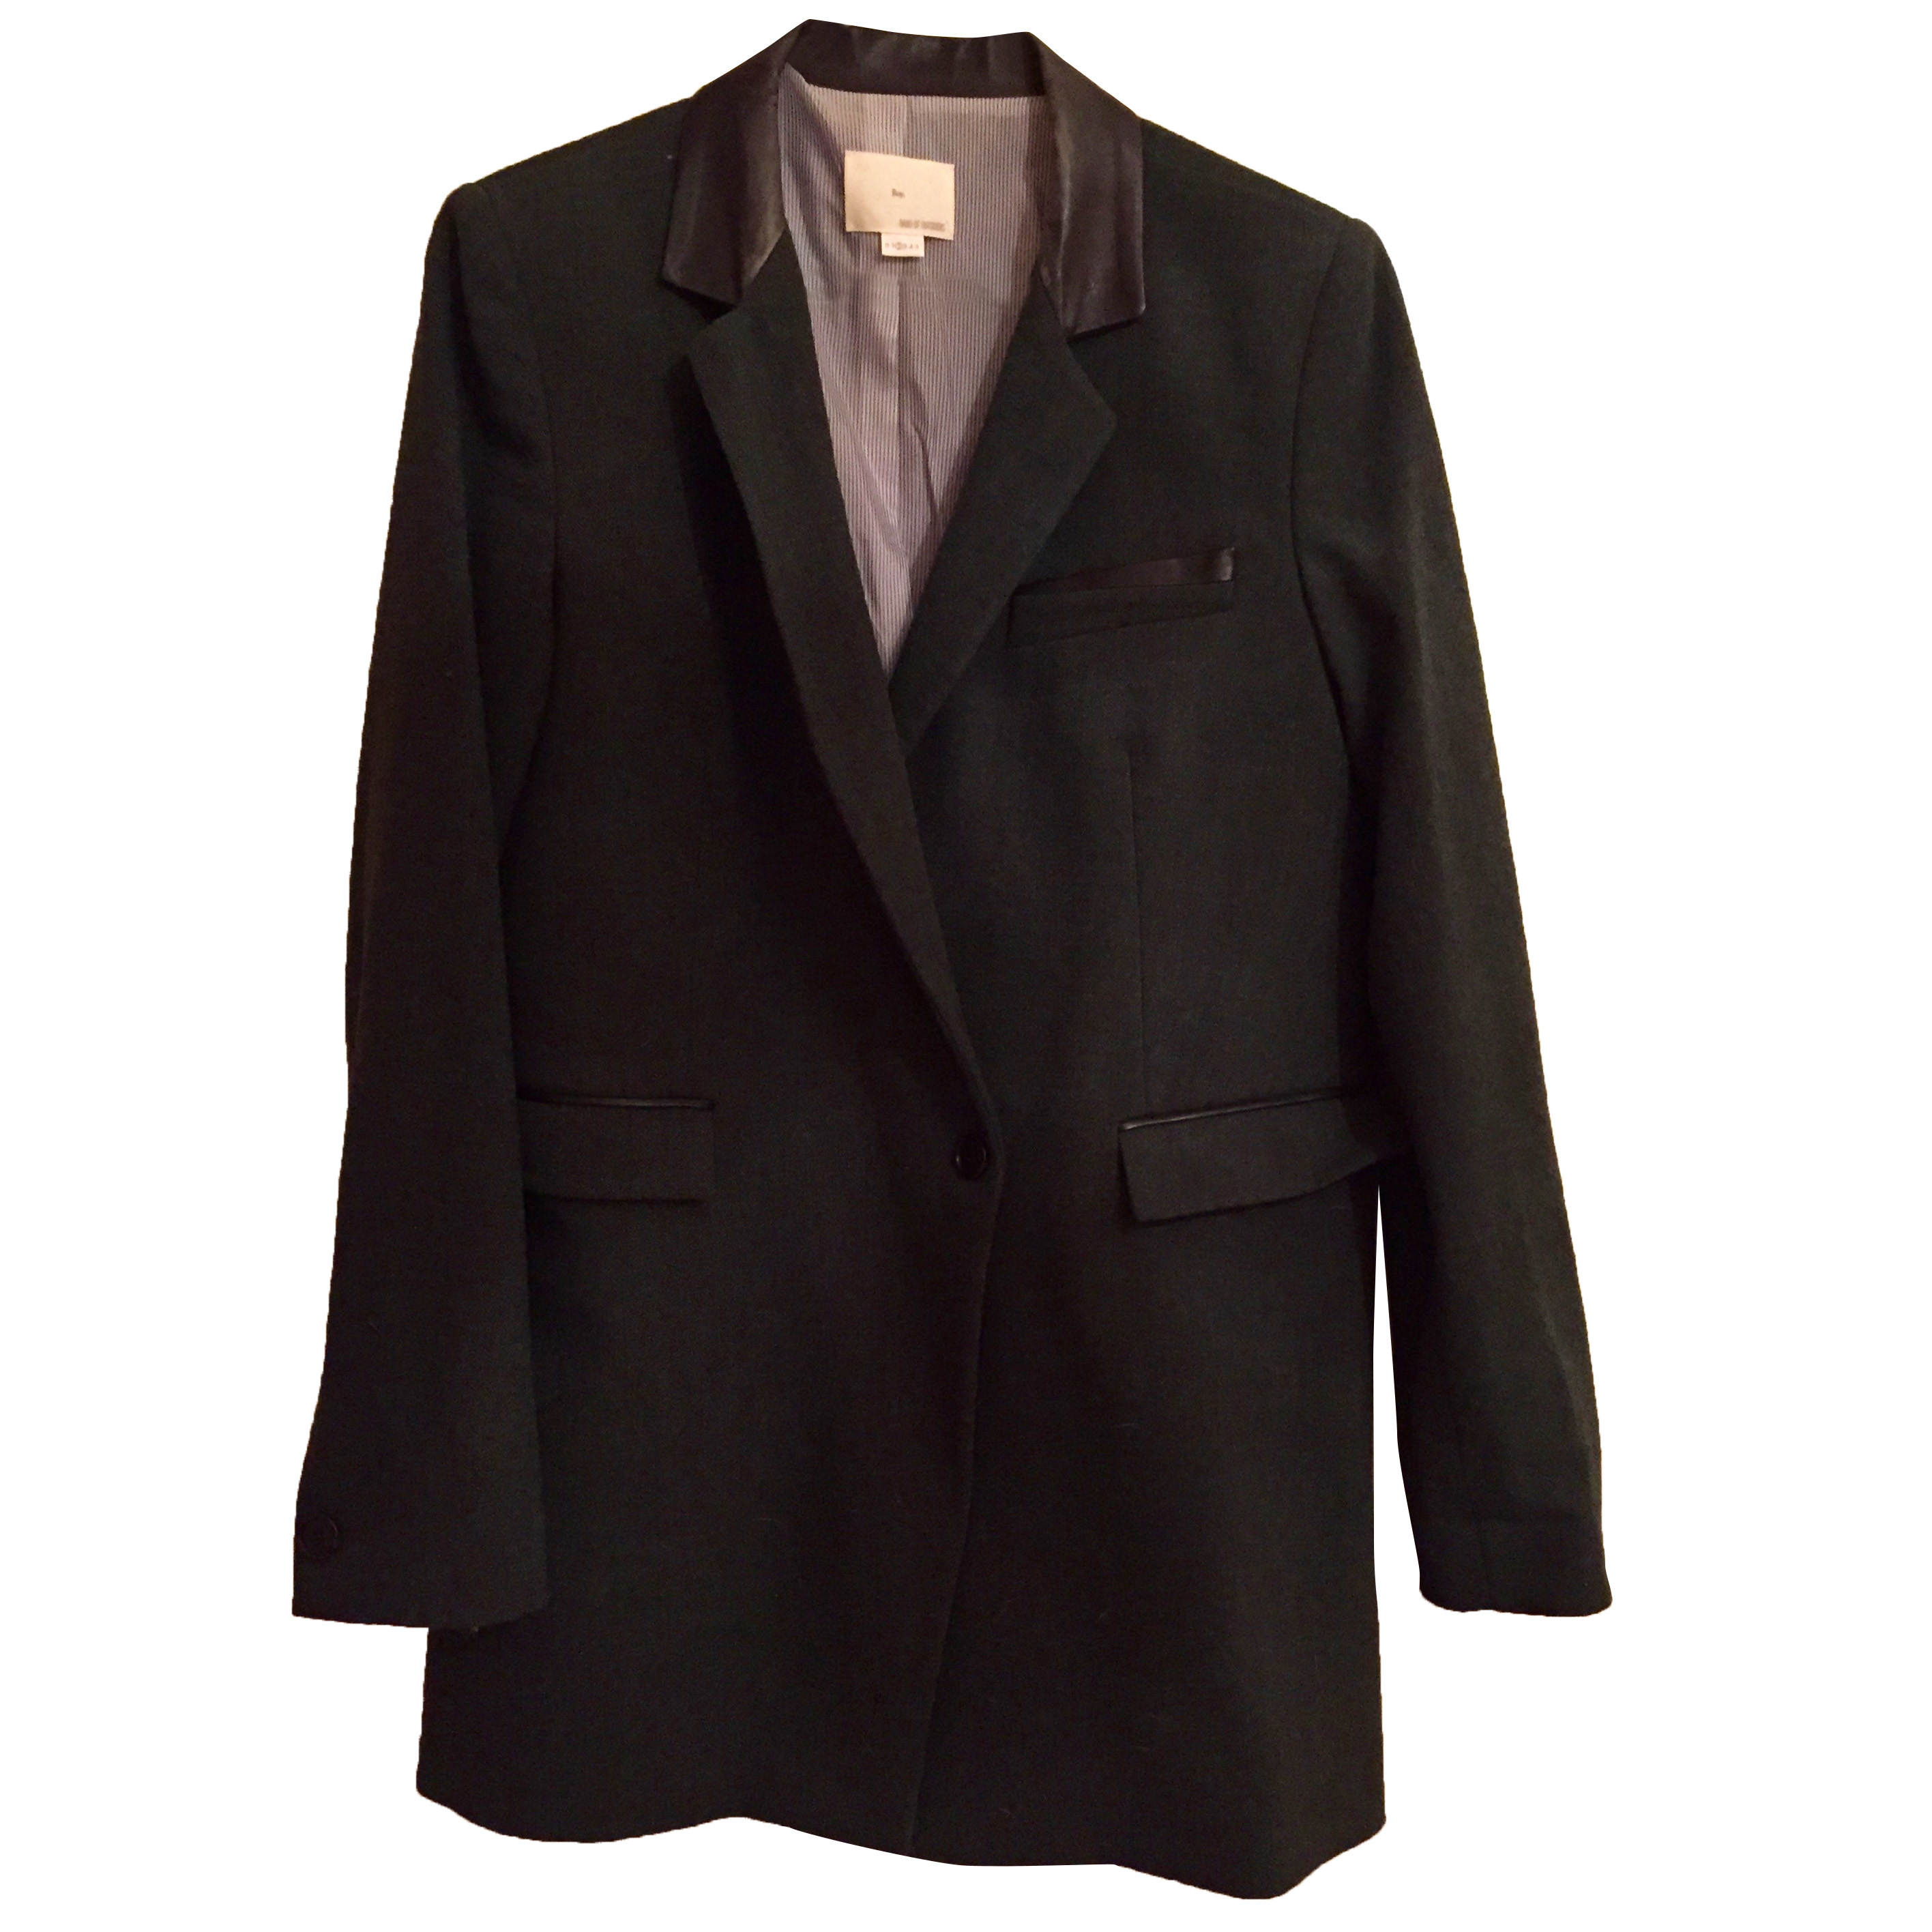 Band of Outsiders Riding Jacket